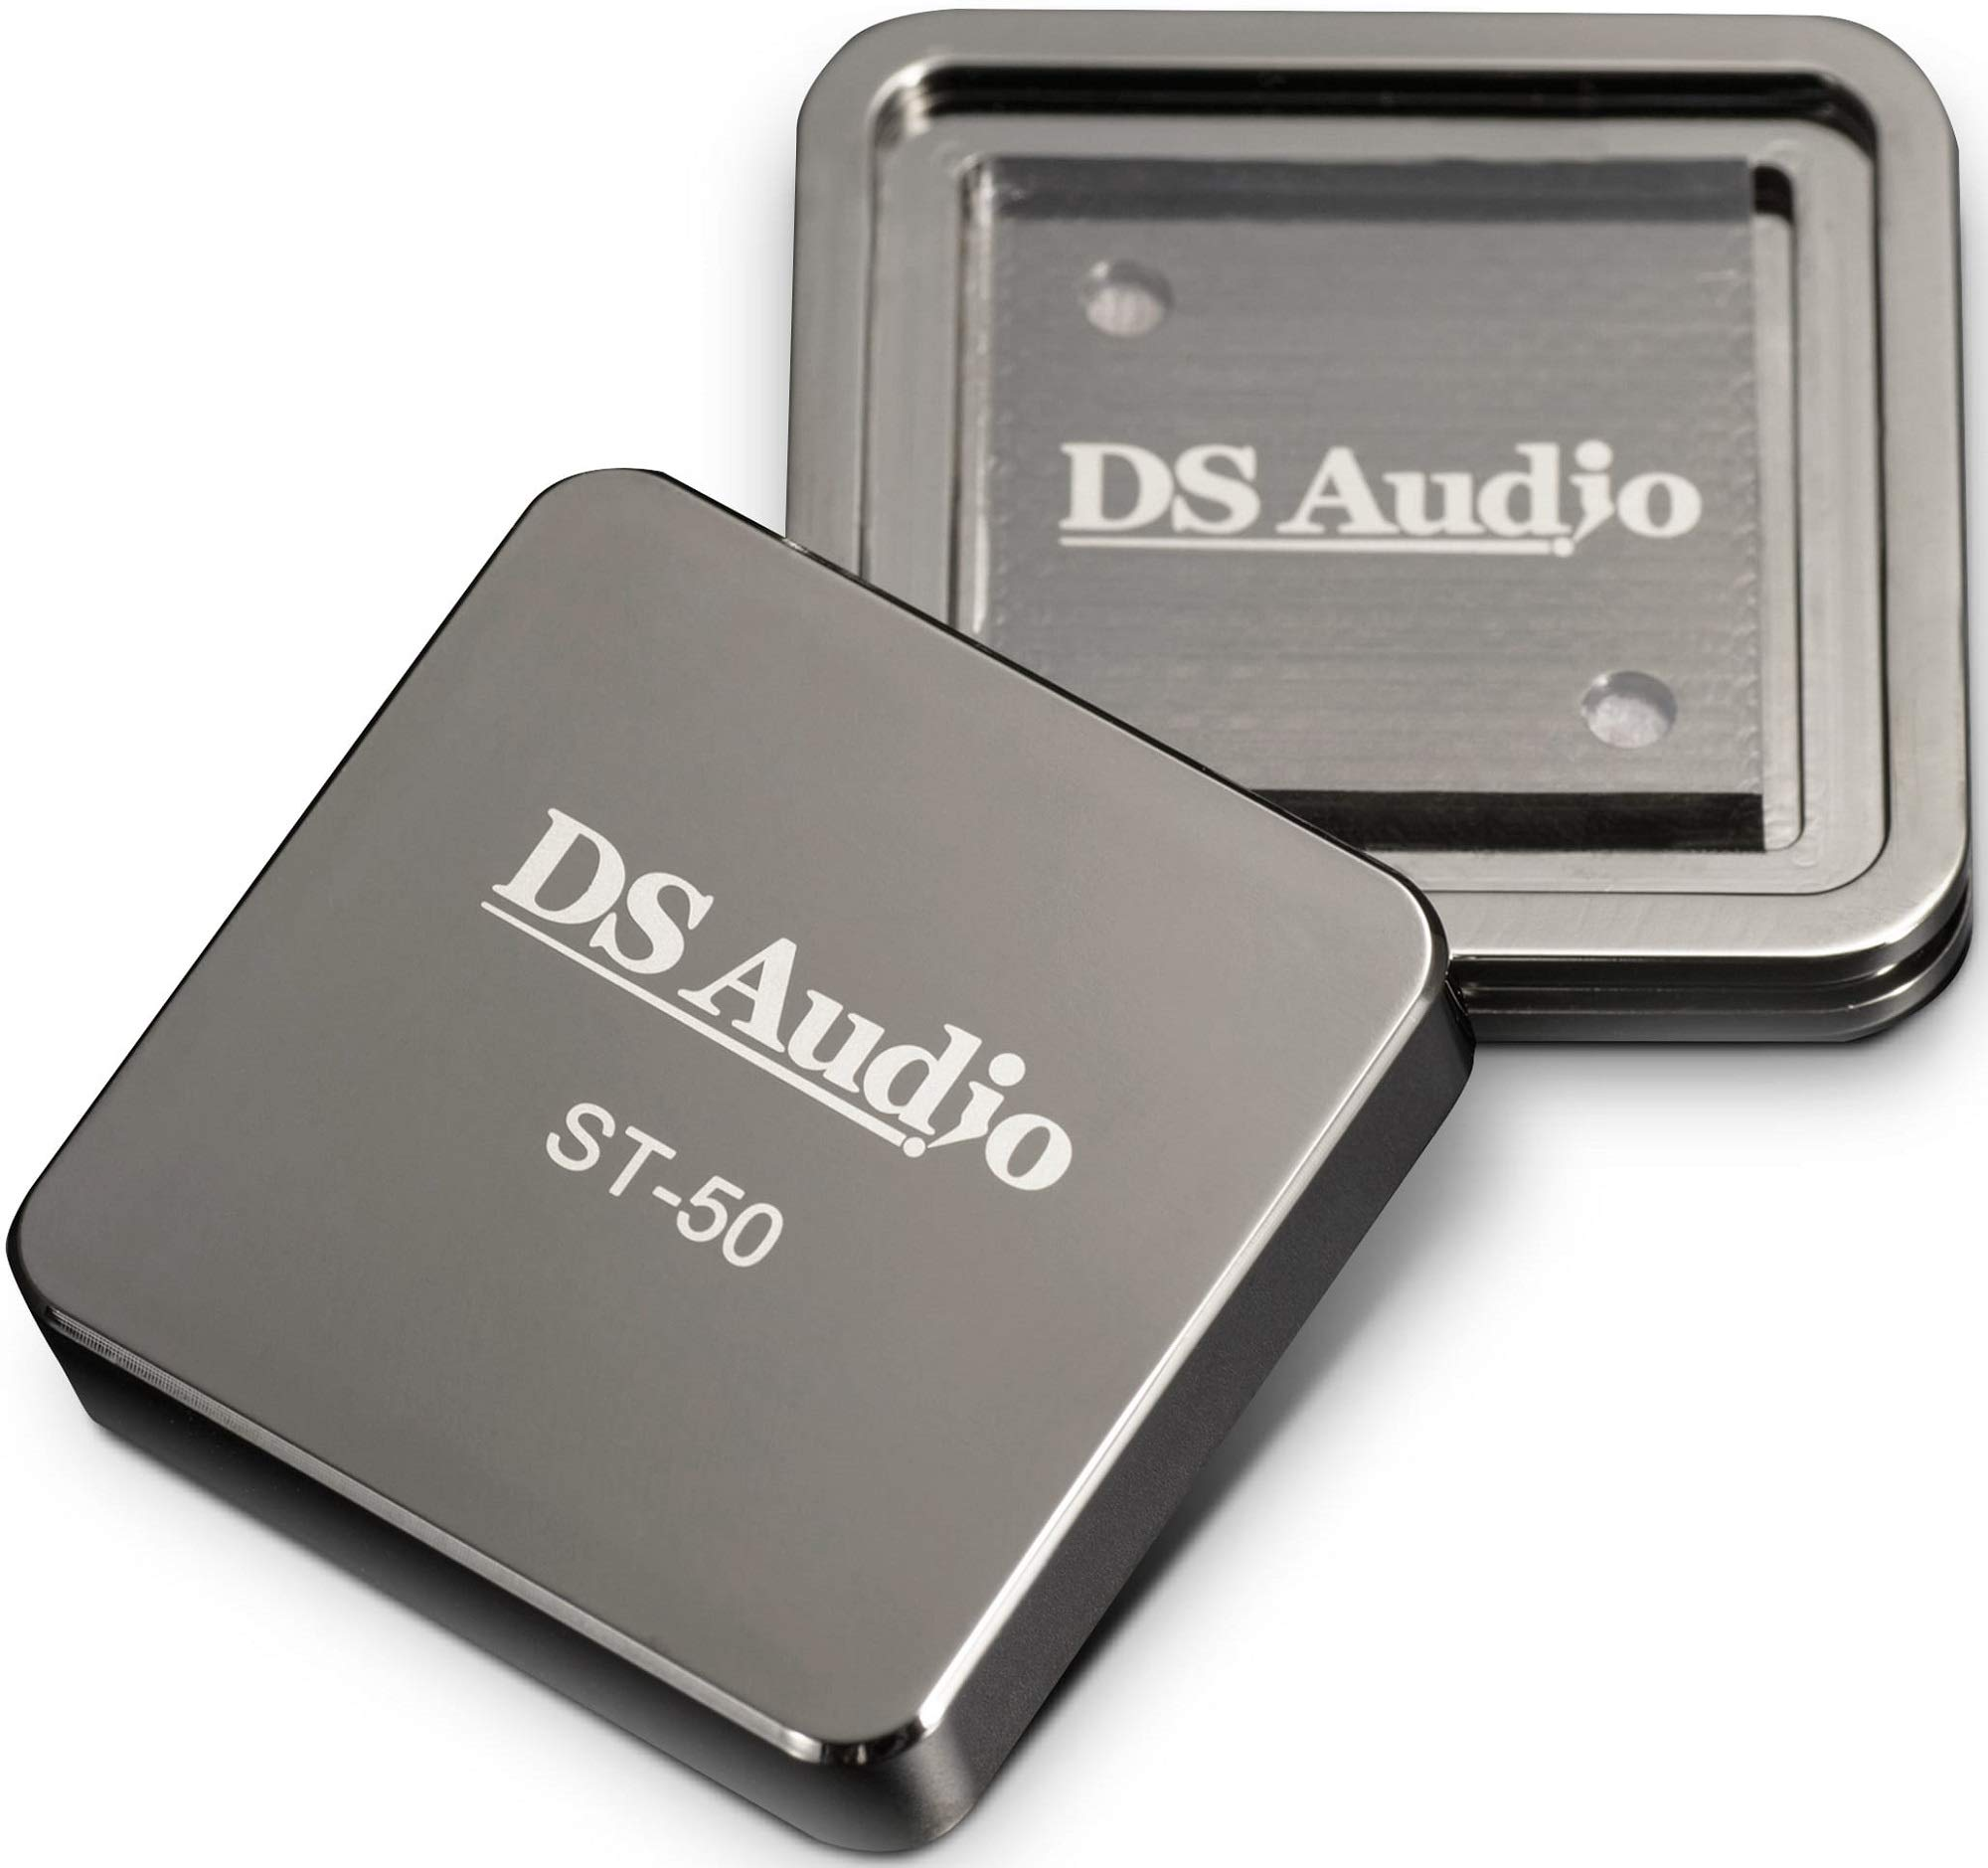 DS Audio ST-50 Drop-in Micro-Dust/Cleaning-Gel Stylus Cleaner by DS Audio